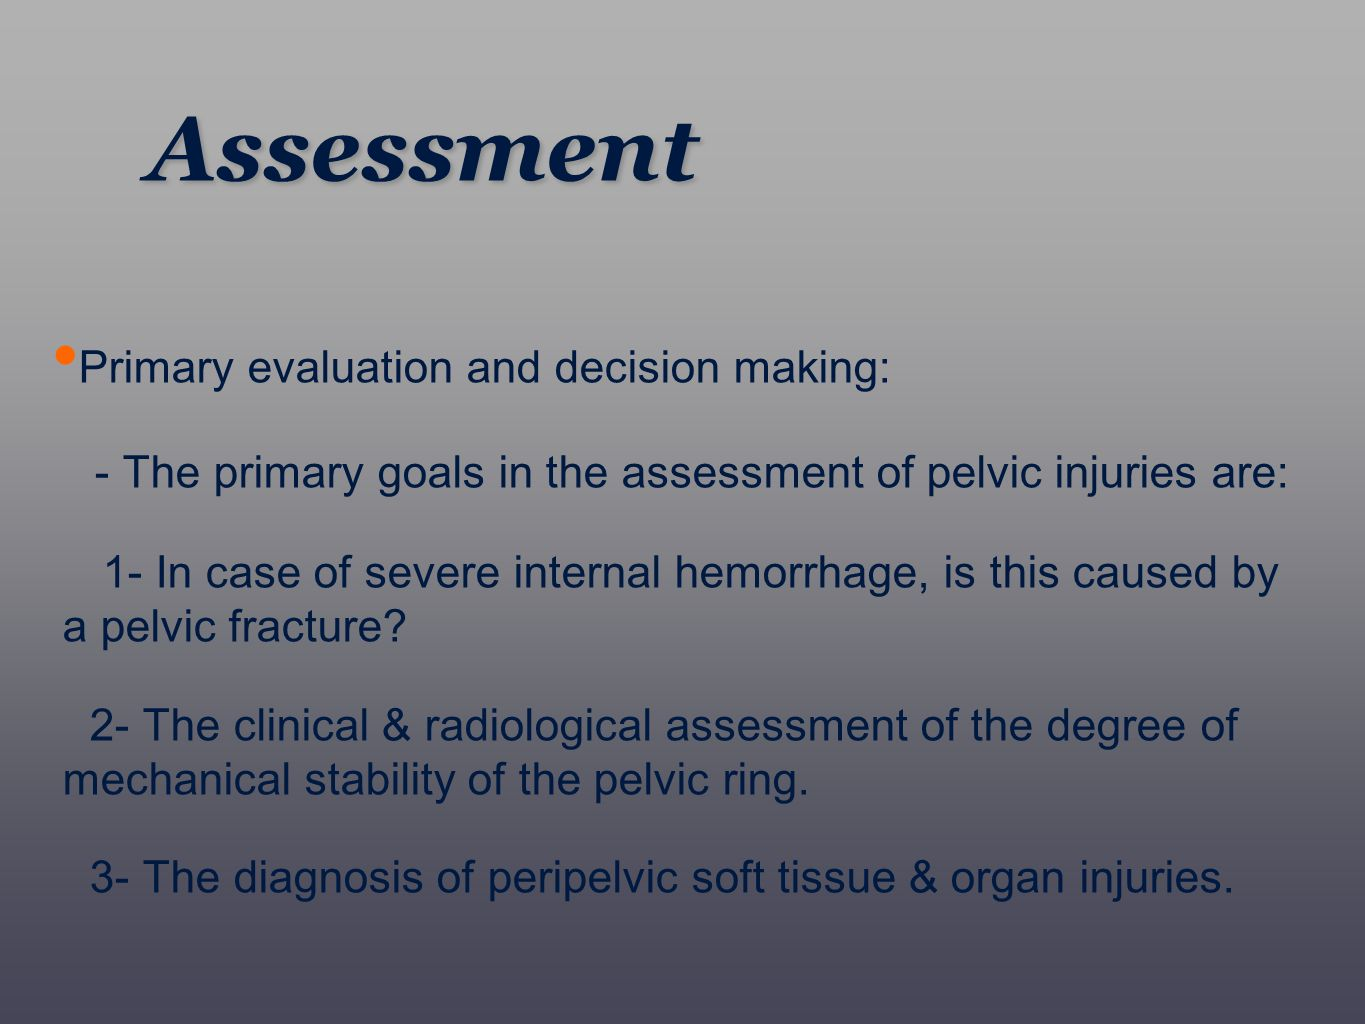 Assessment Primary evaluation and decision making: - The primary goals in the assessment of pelvic injuries are: